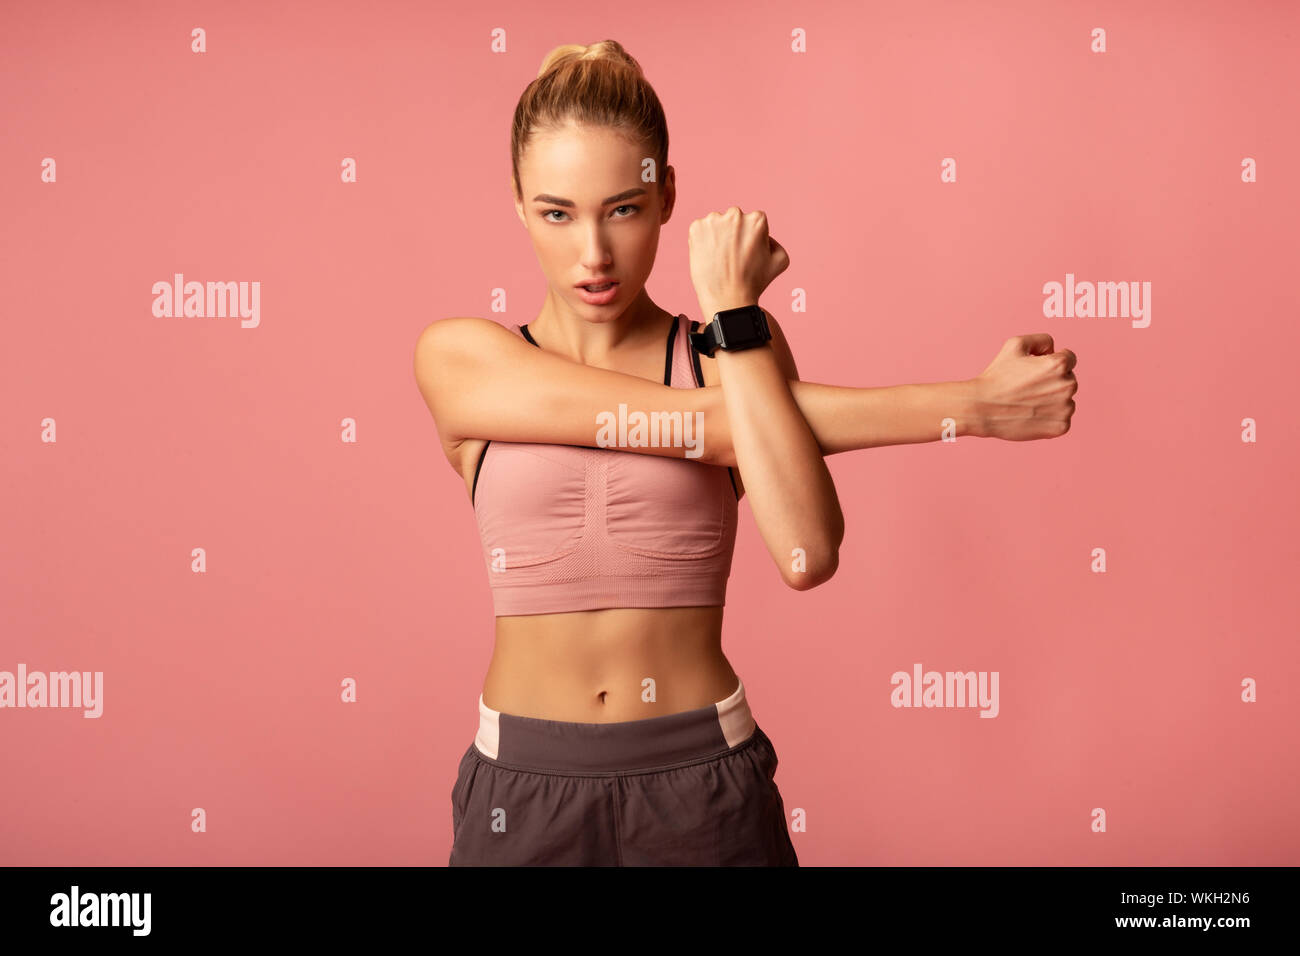 Young Lady Doing Arm Stretch Exercise On Pink Background Stock Photo